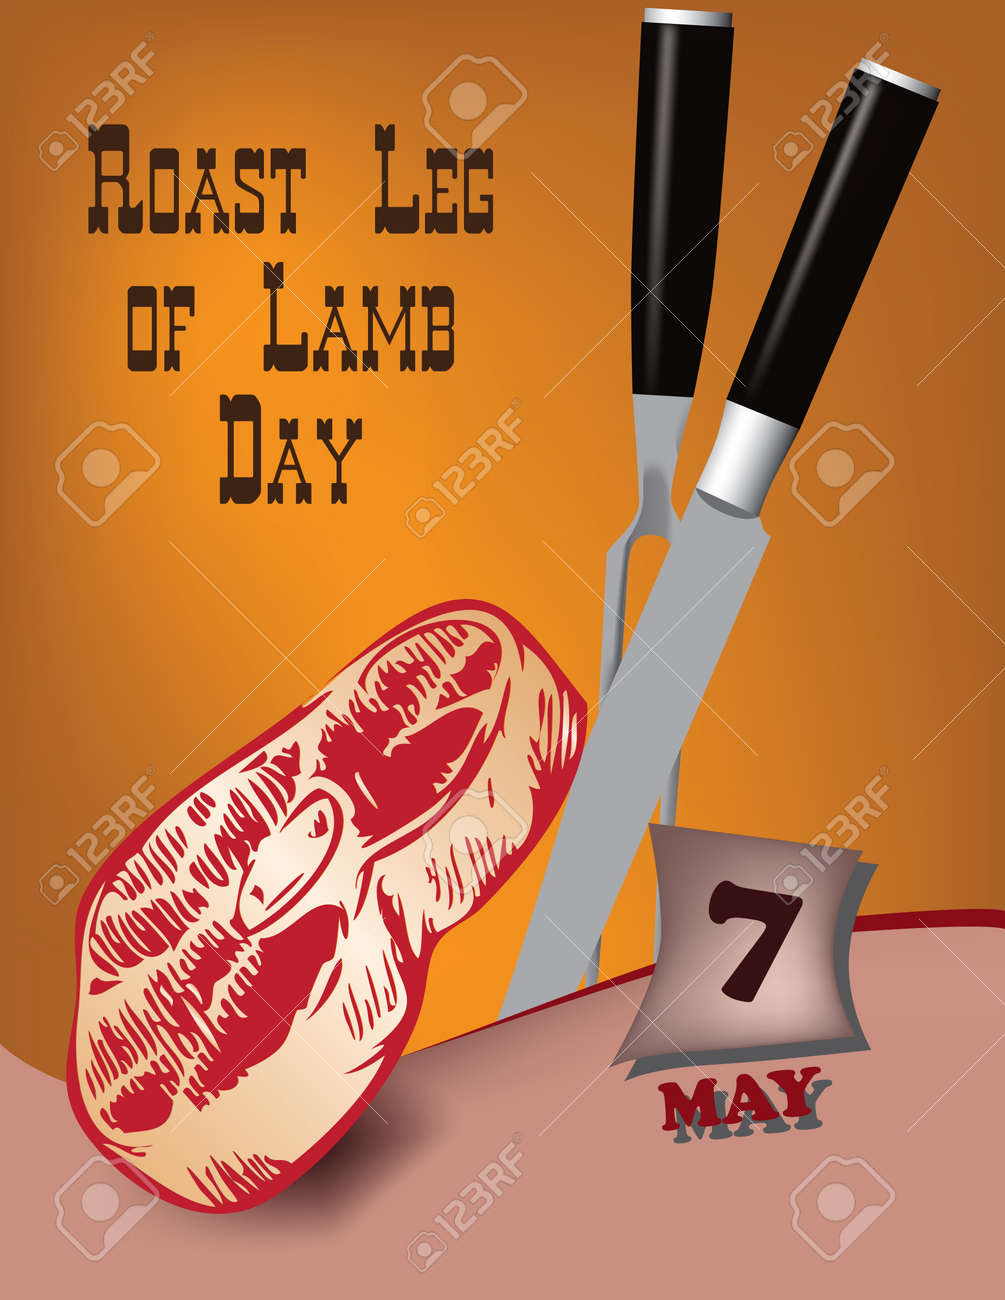 Poster Roast Leg of Lamb Day.Vector illustration for a holiday date in may - 168987755